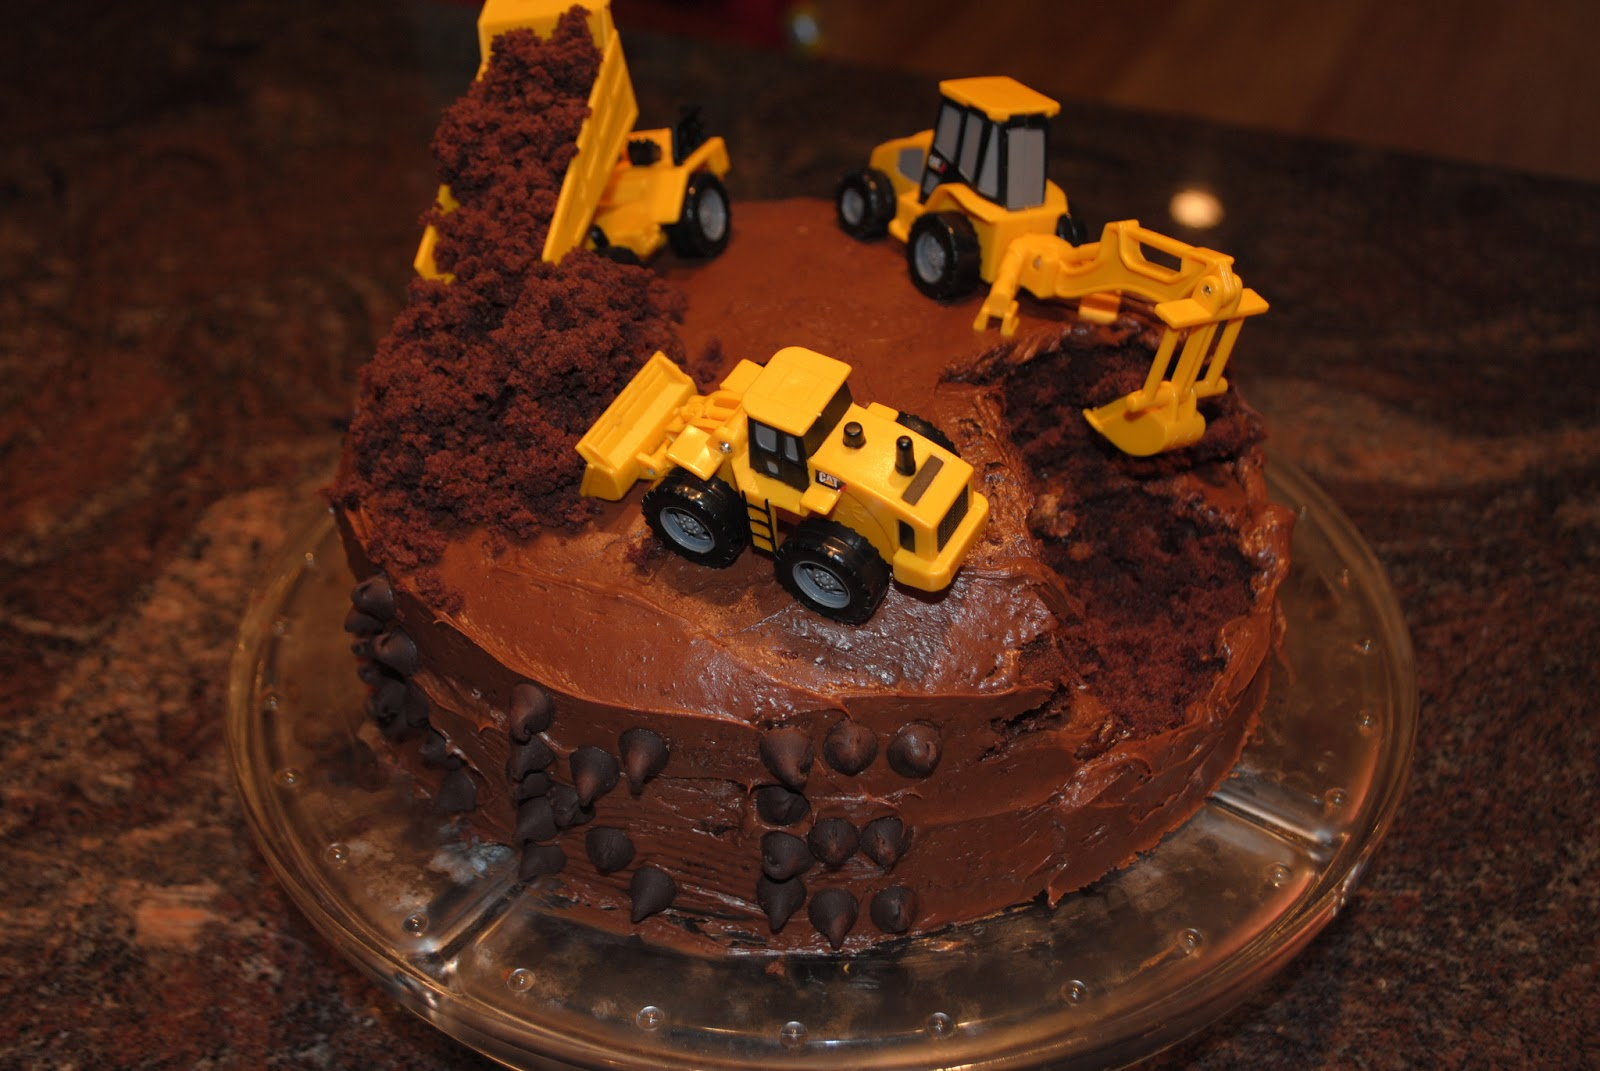 Construction Birthday Cakes Two It Yourself Diy Construction Birthday Cake In 3 Steps Bake